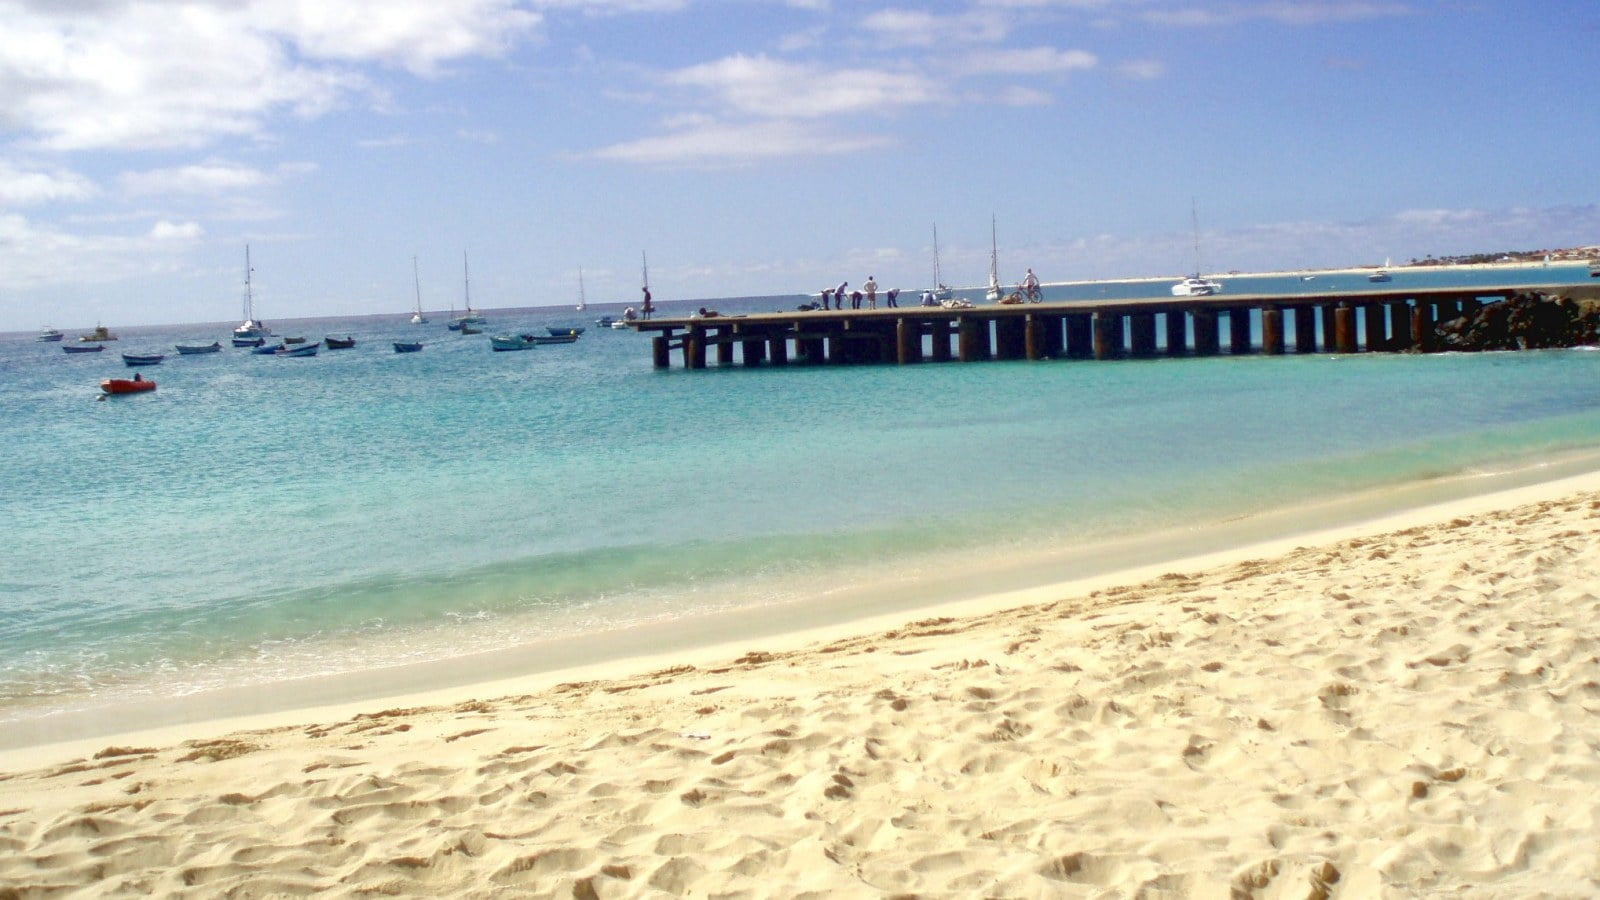 The pier at the beach of Santa Maria in Sal